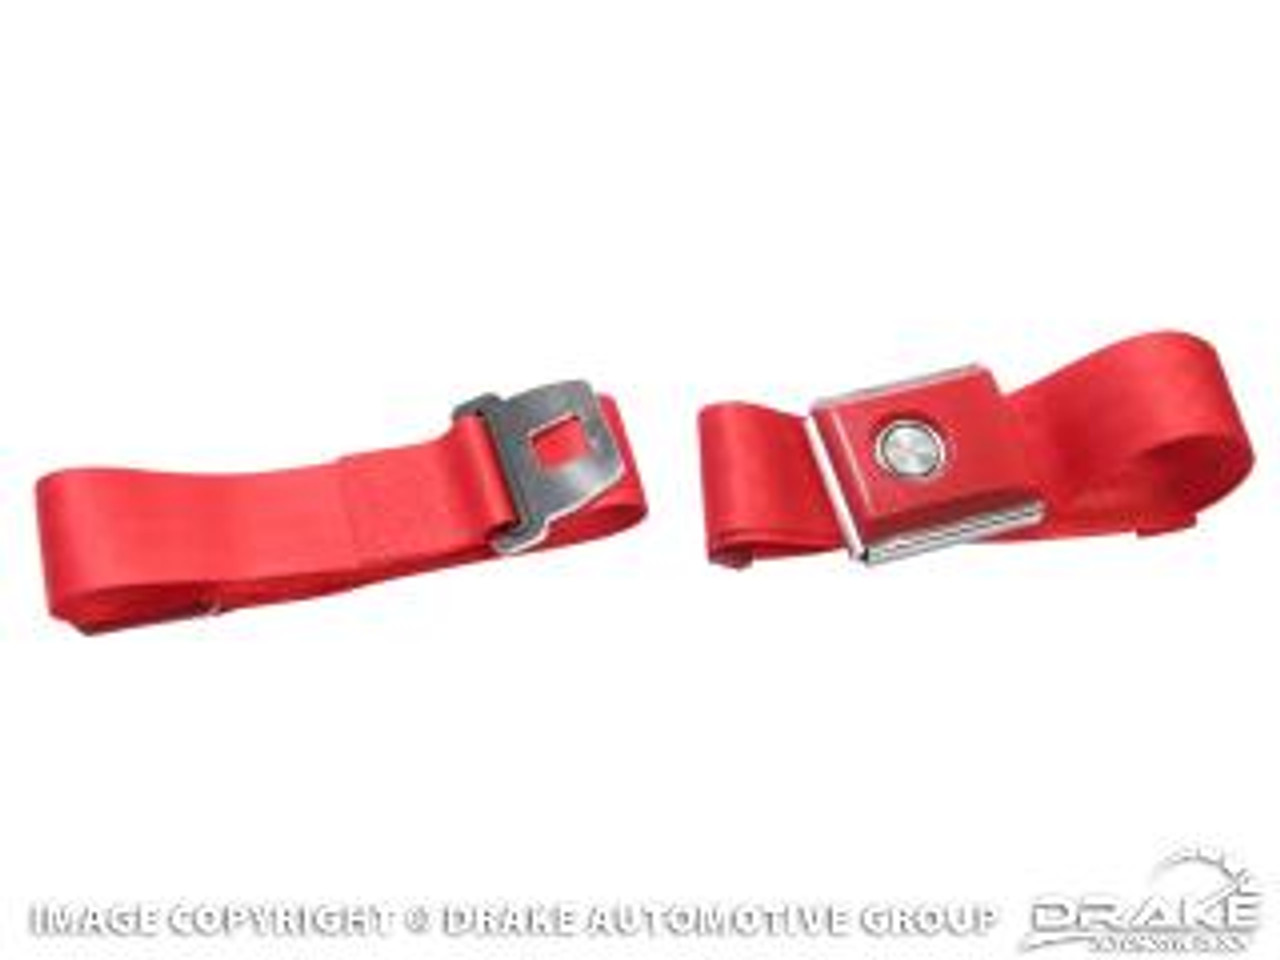 1964-73 Ford Mustang aftermarket seat belt. Great looking replacement style seat belts.